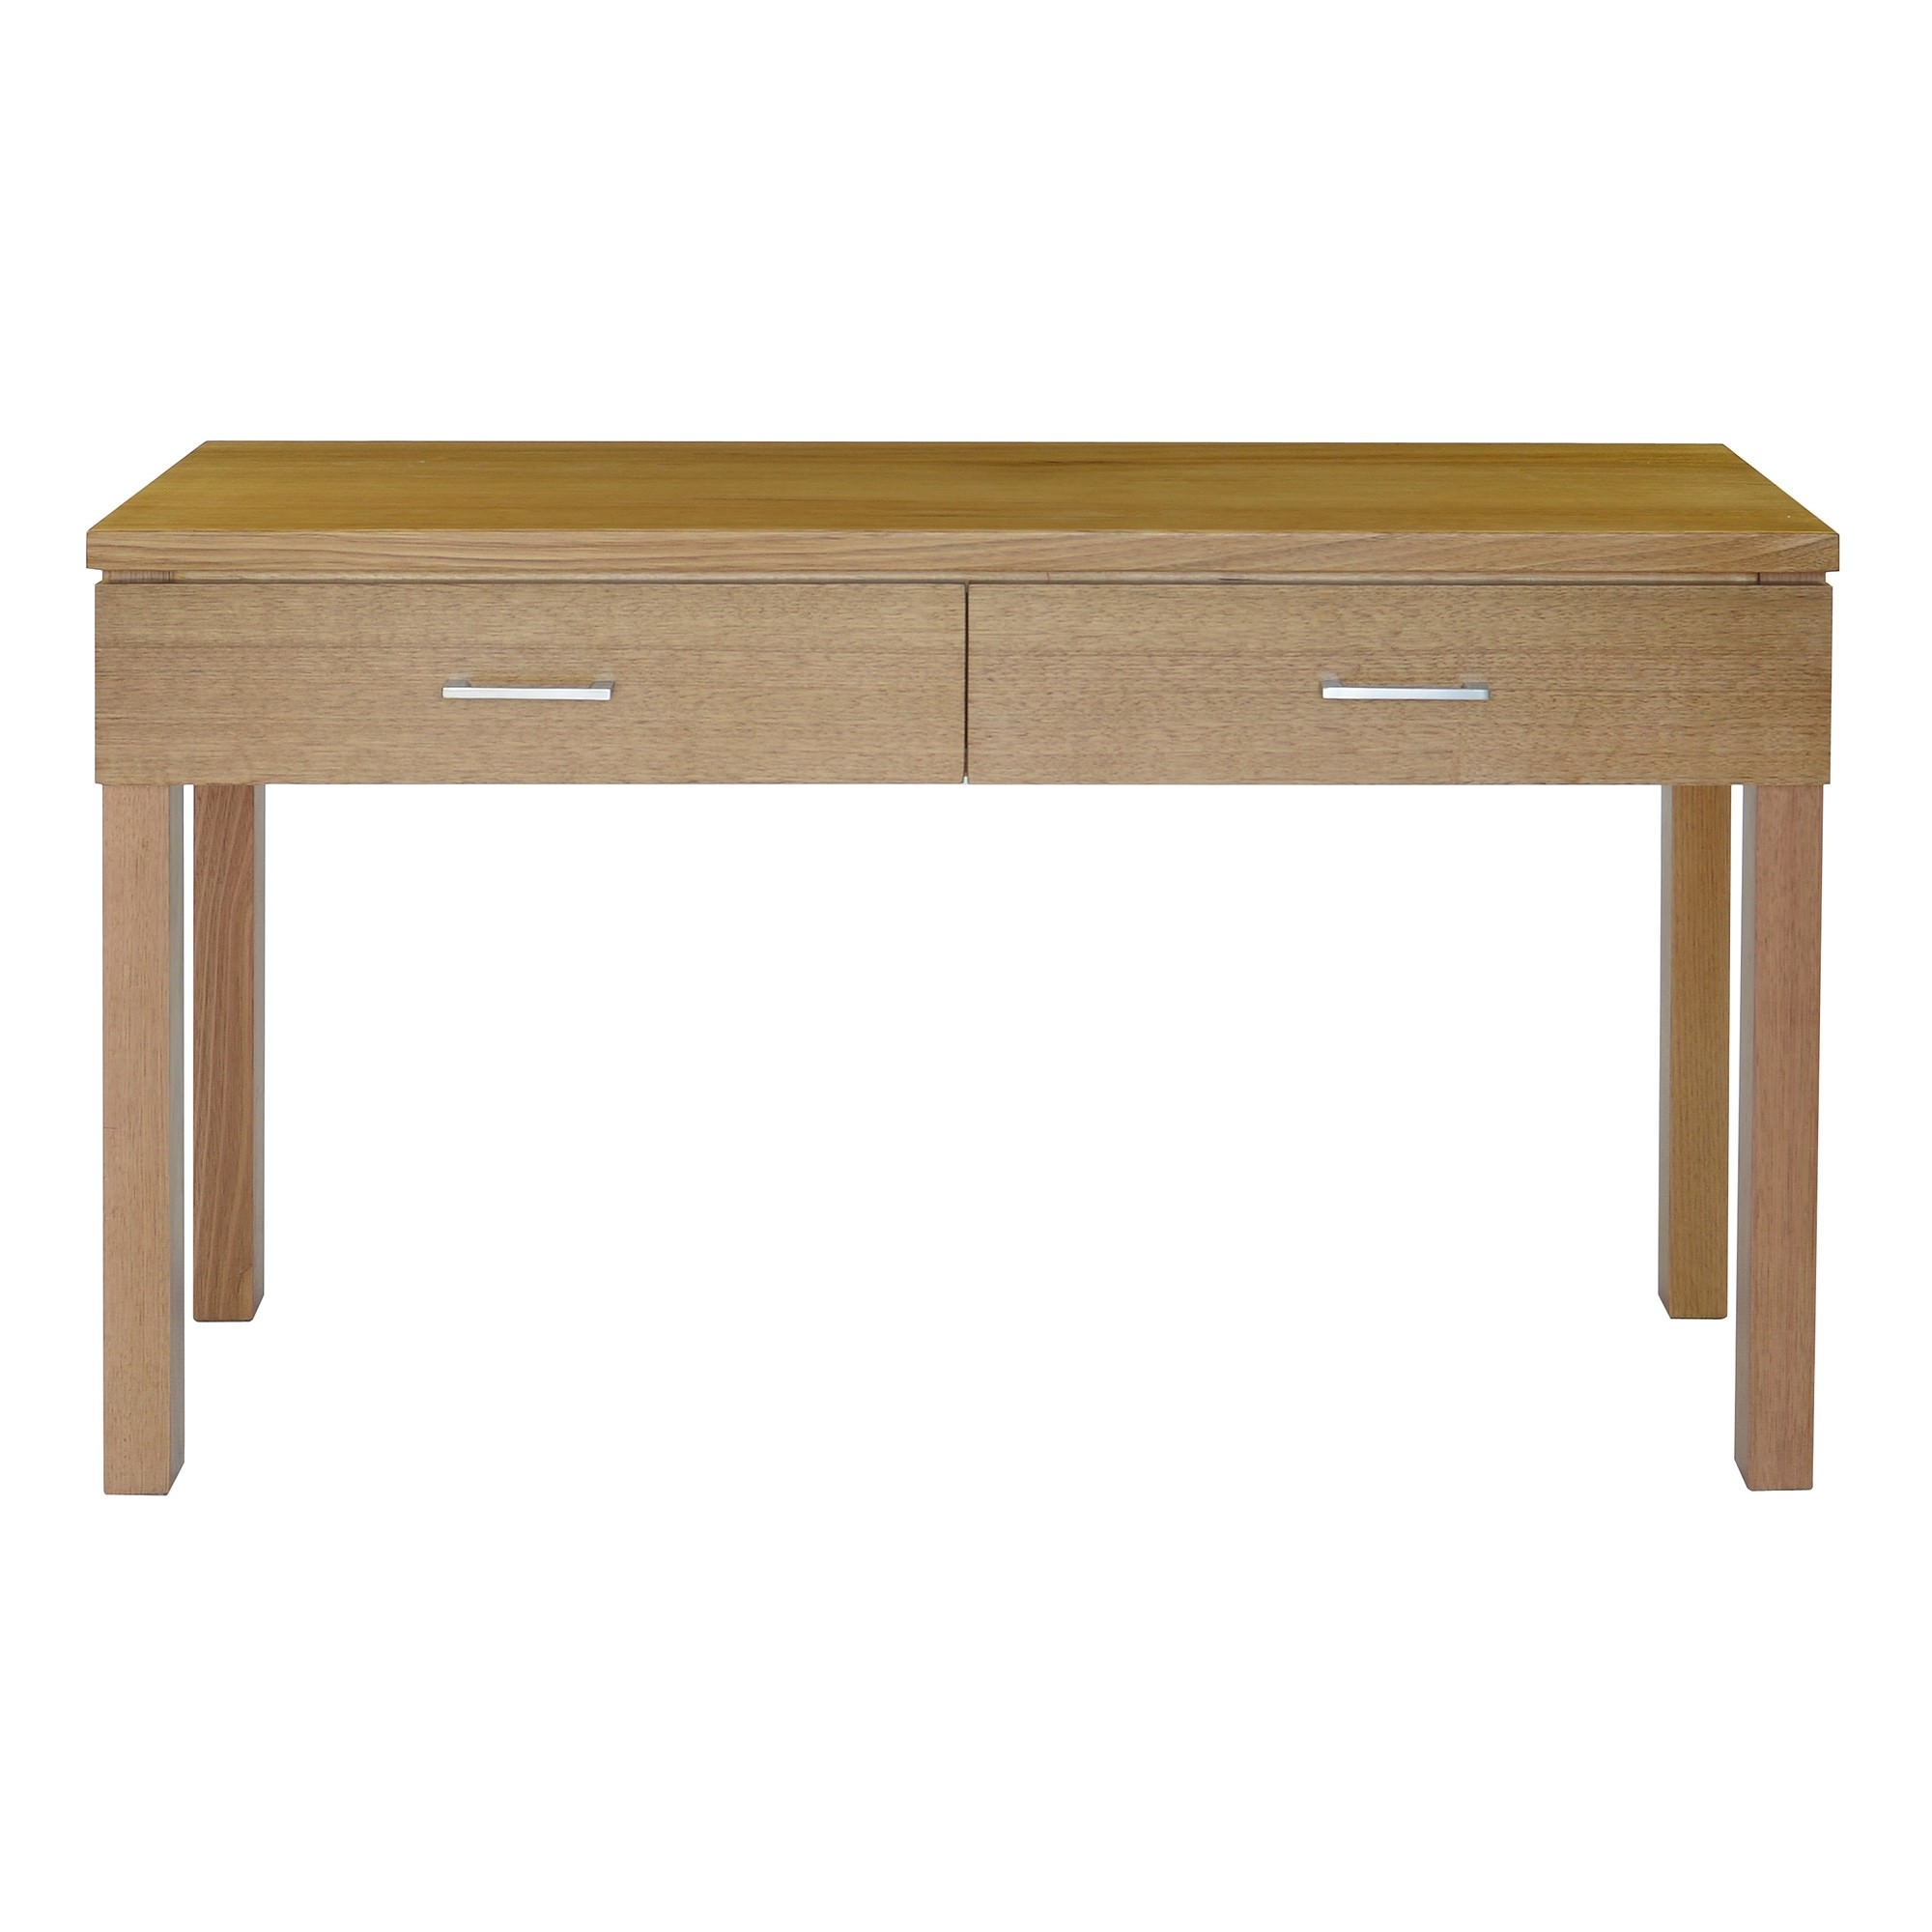 Moselia Tasmanian Oak Timber Hall Table, 125cm, Wheat